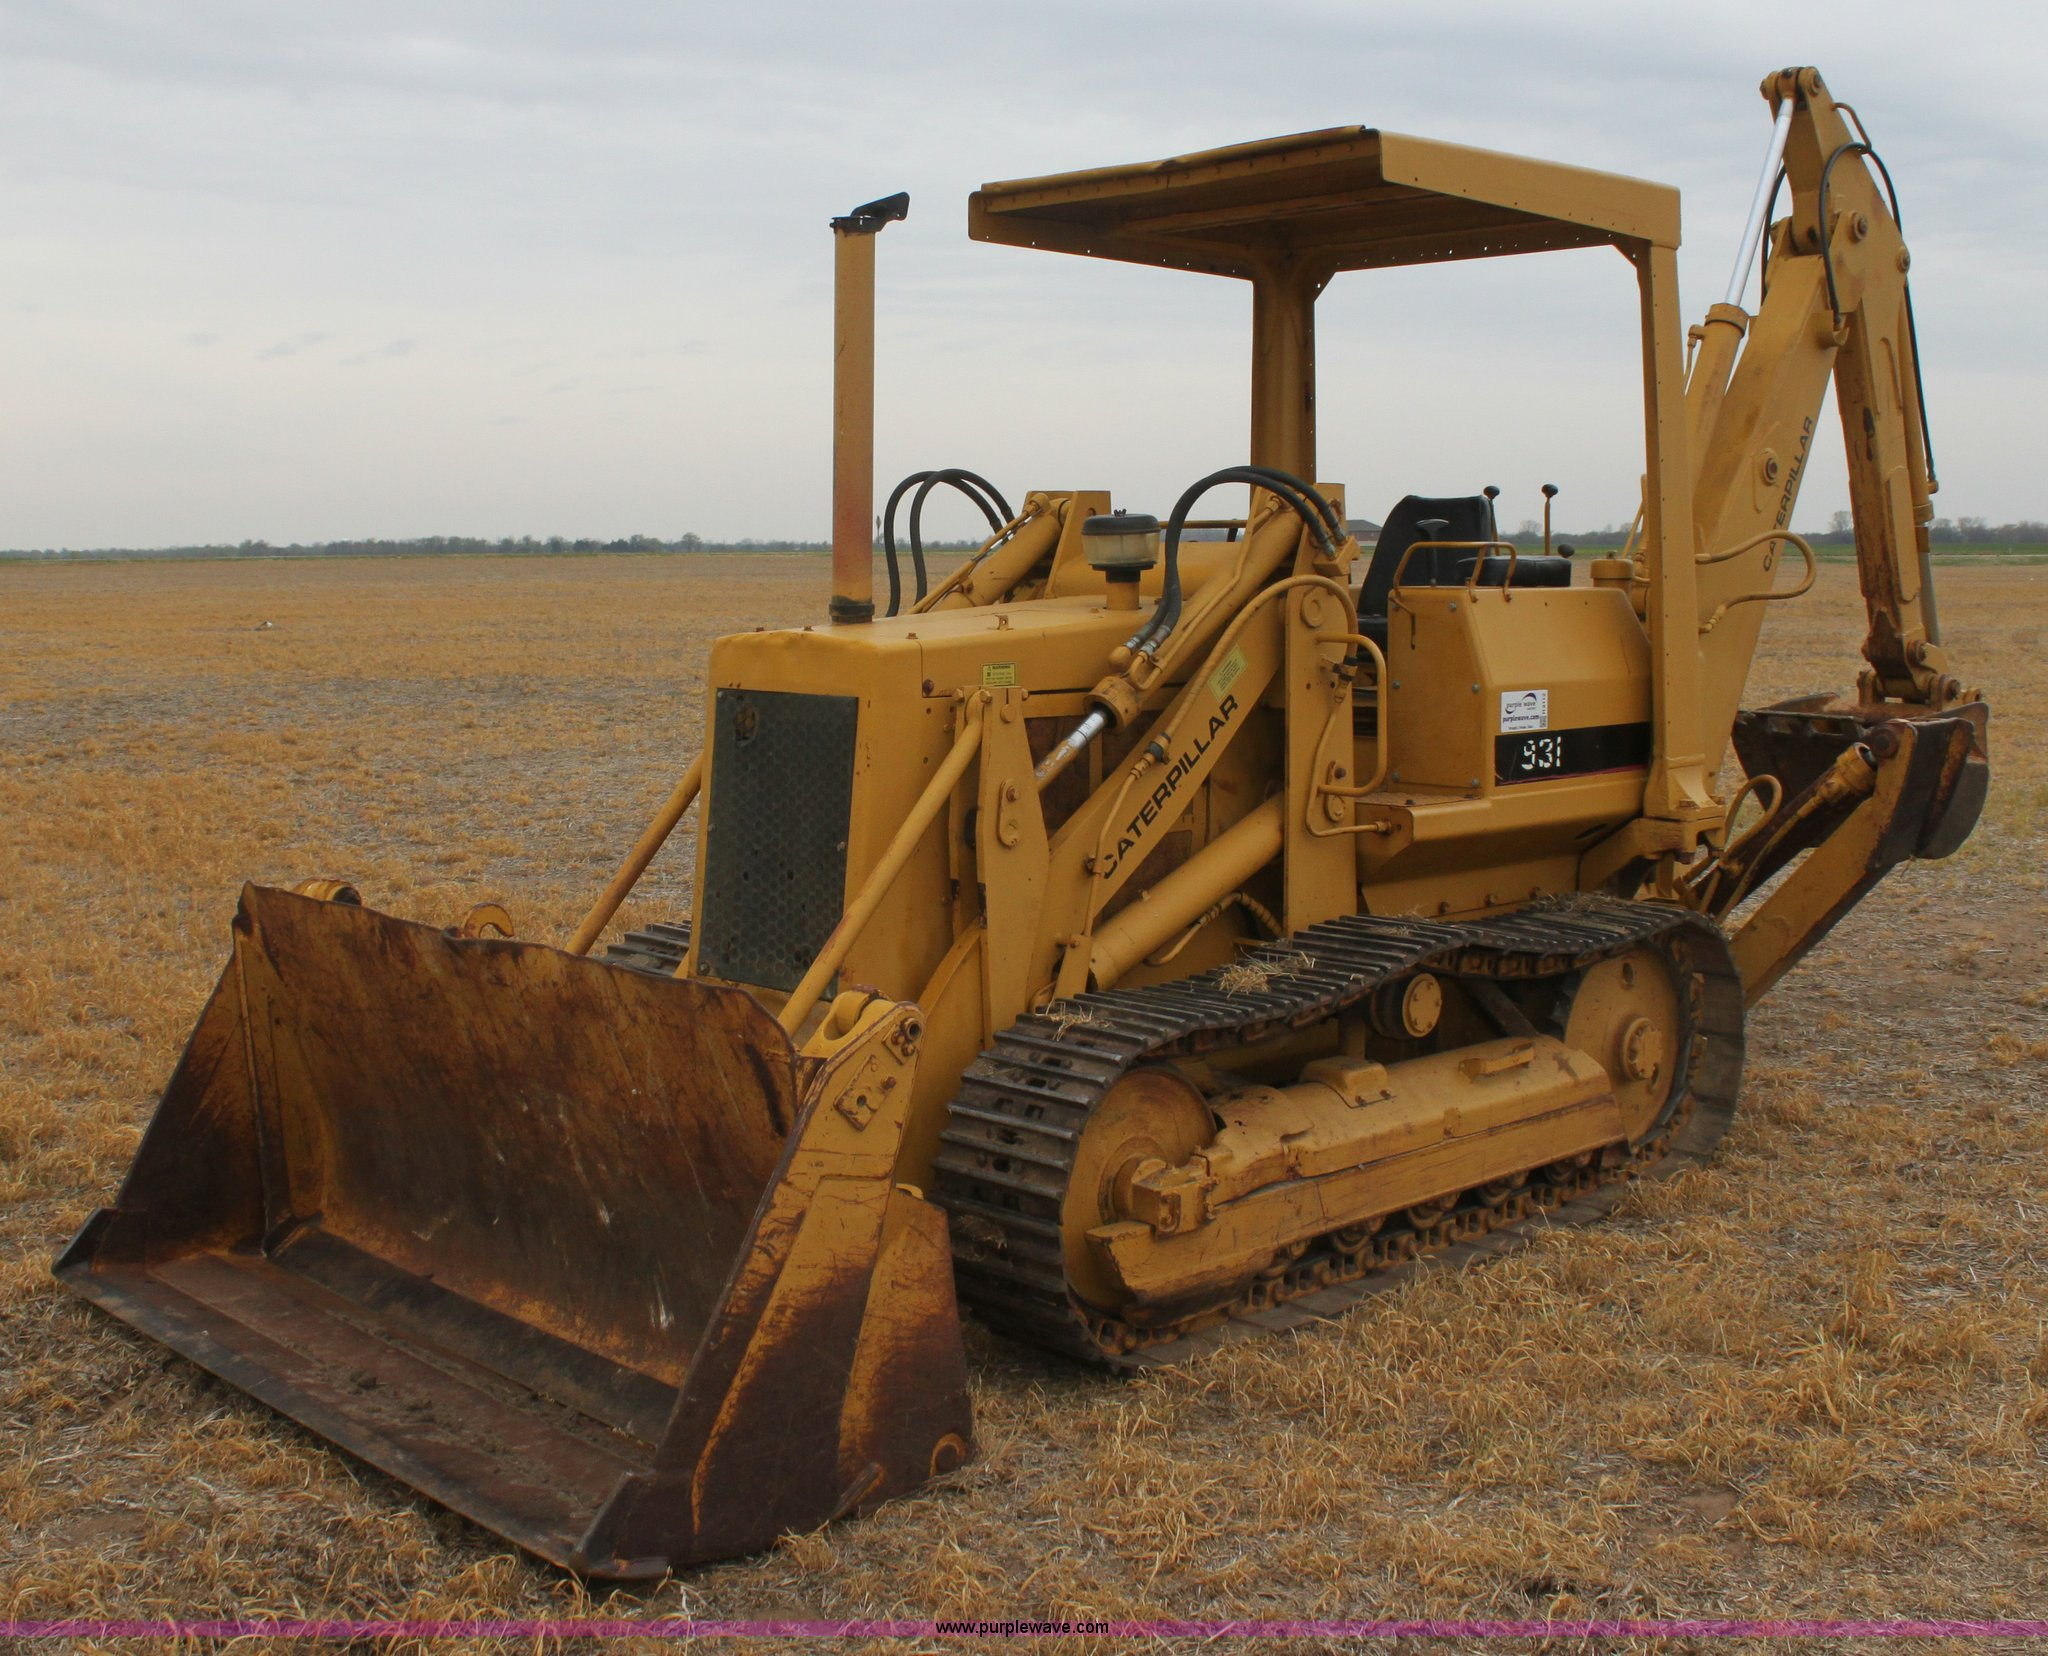 Track Loader For Sale >> 1979 Caterpillar 931 Track Loader With Backhoe Attachment